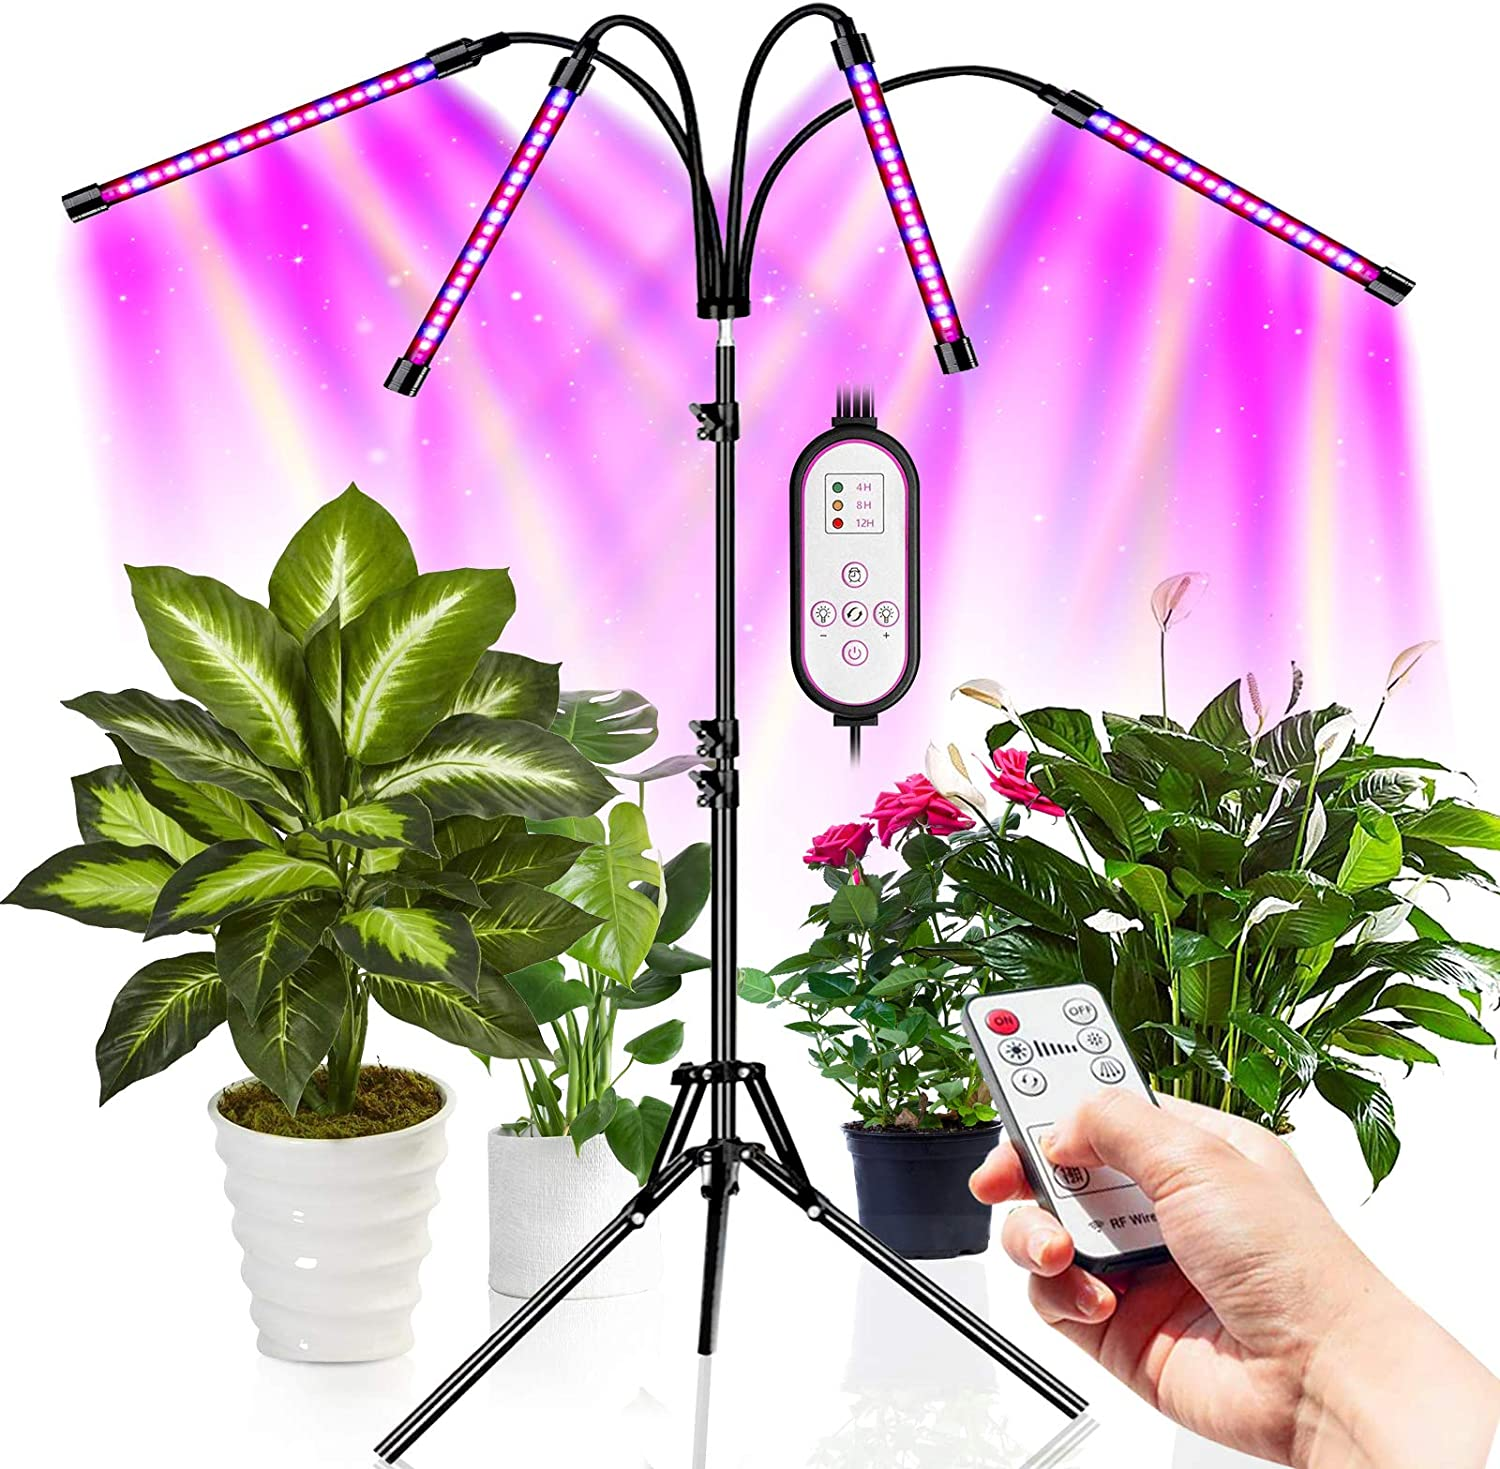 Grow Light, Led Grow Lights for Indoor Plants Full Spectrum Plant Light with Tripod Stand Adjustable 15-55 inch 80 LED Plant Lamps for Succulent and Seeding